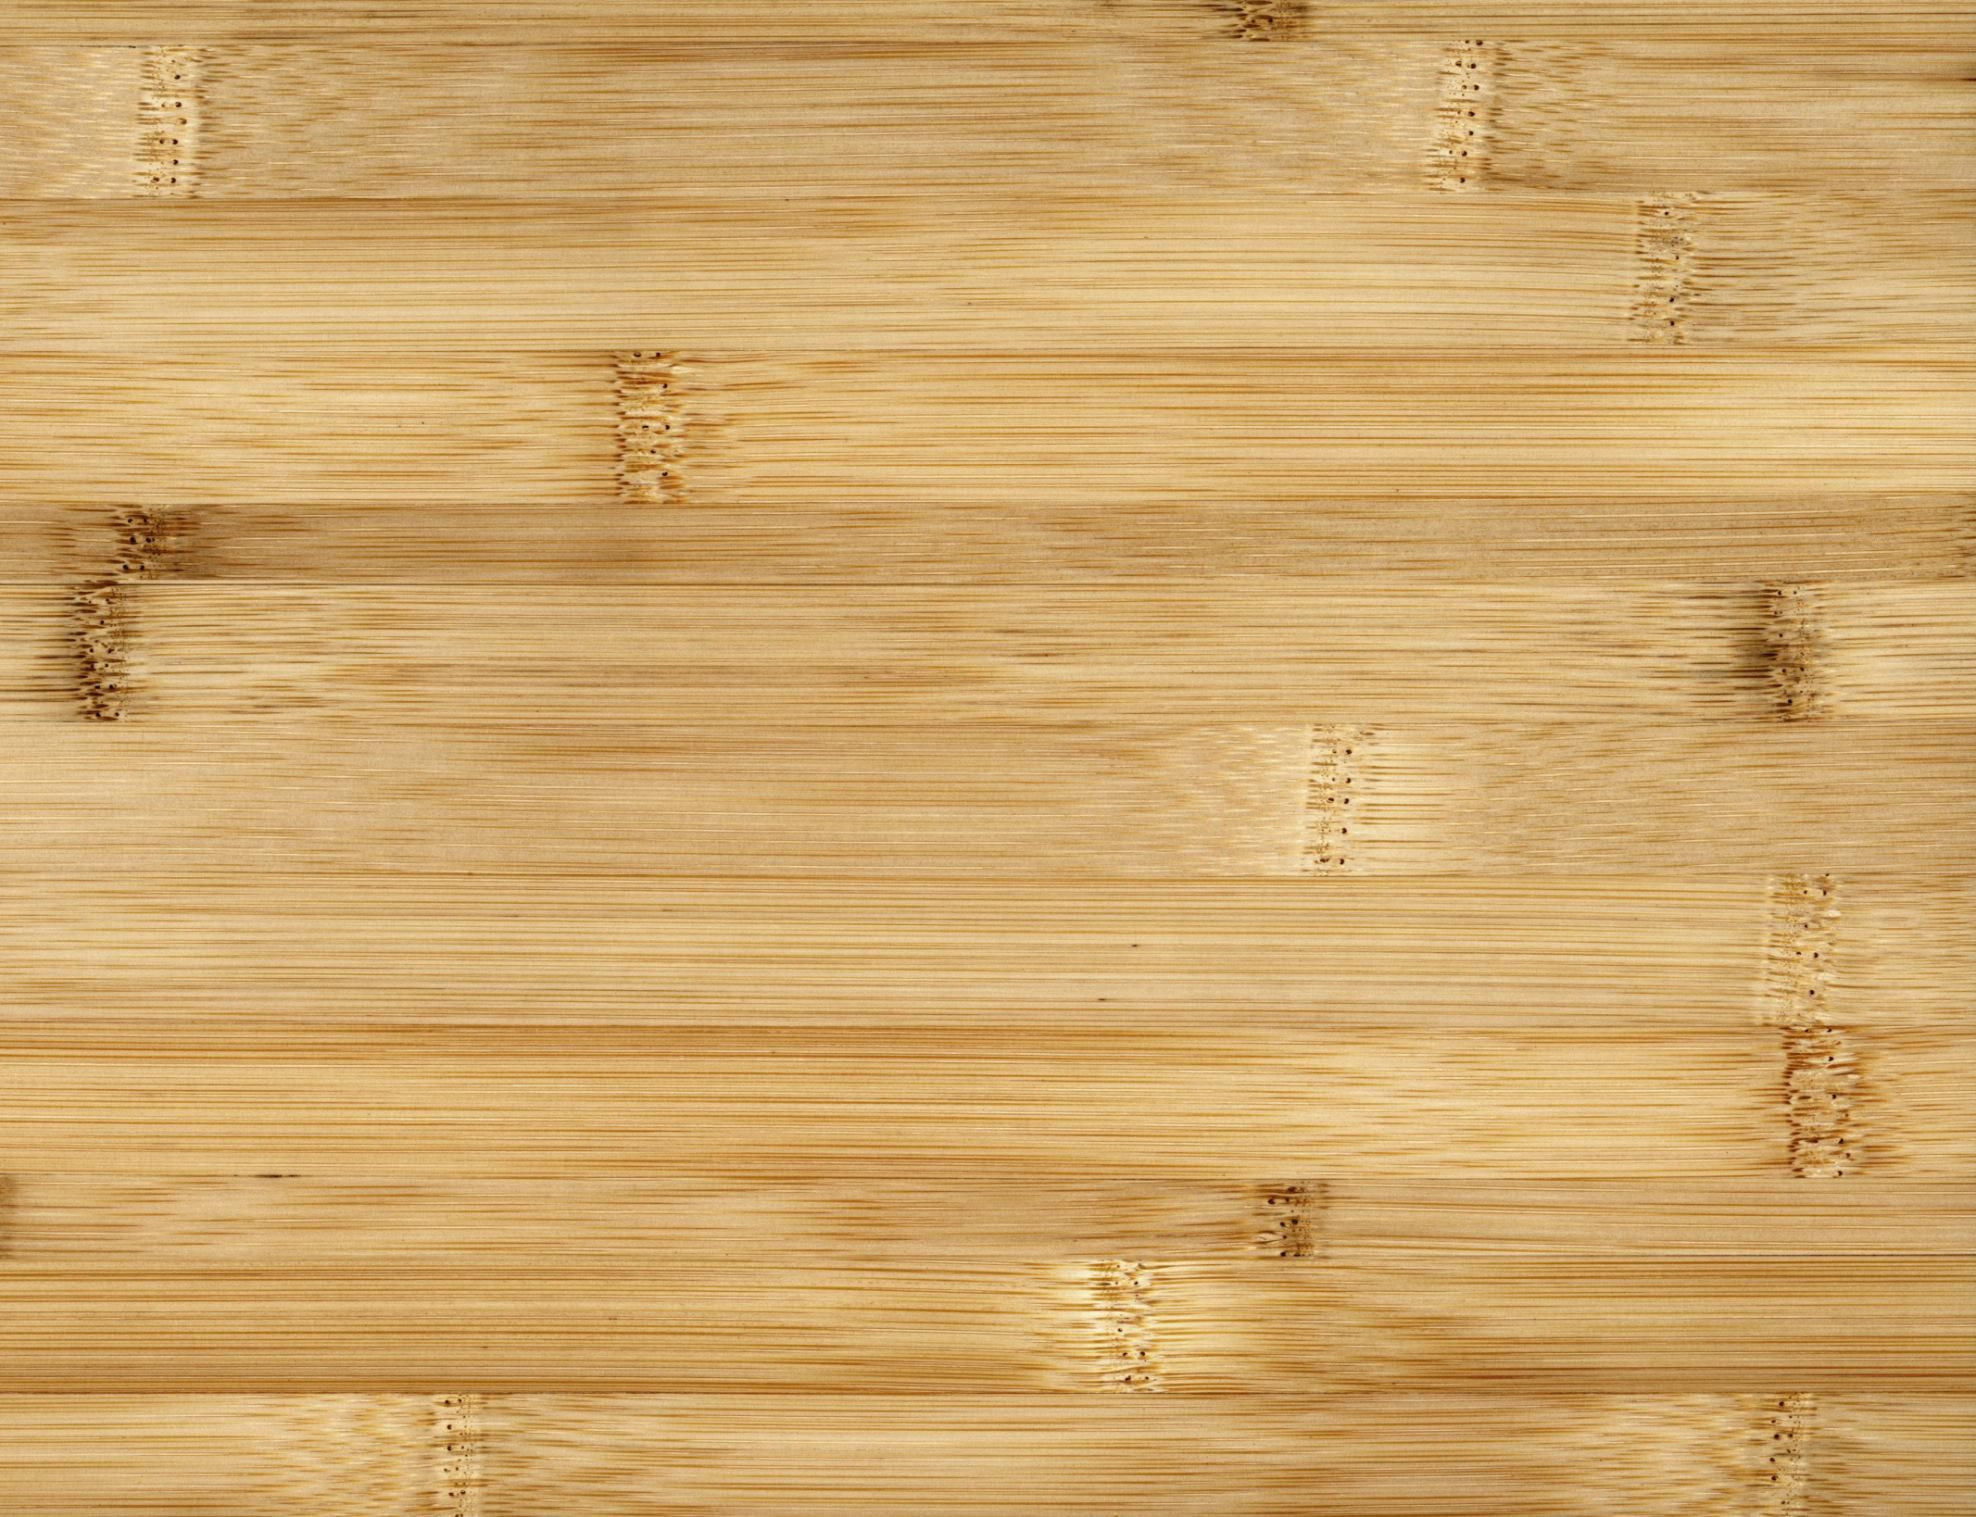 hardwood floor refinishing regina of how to clean bamboo flooring for 200266305 001 56a2fd815f9b58b7d0d000cd